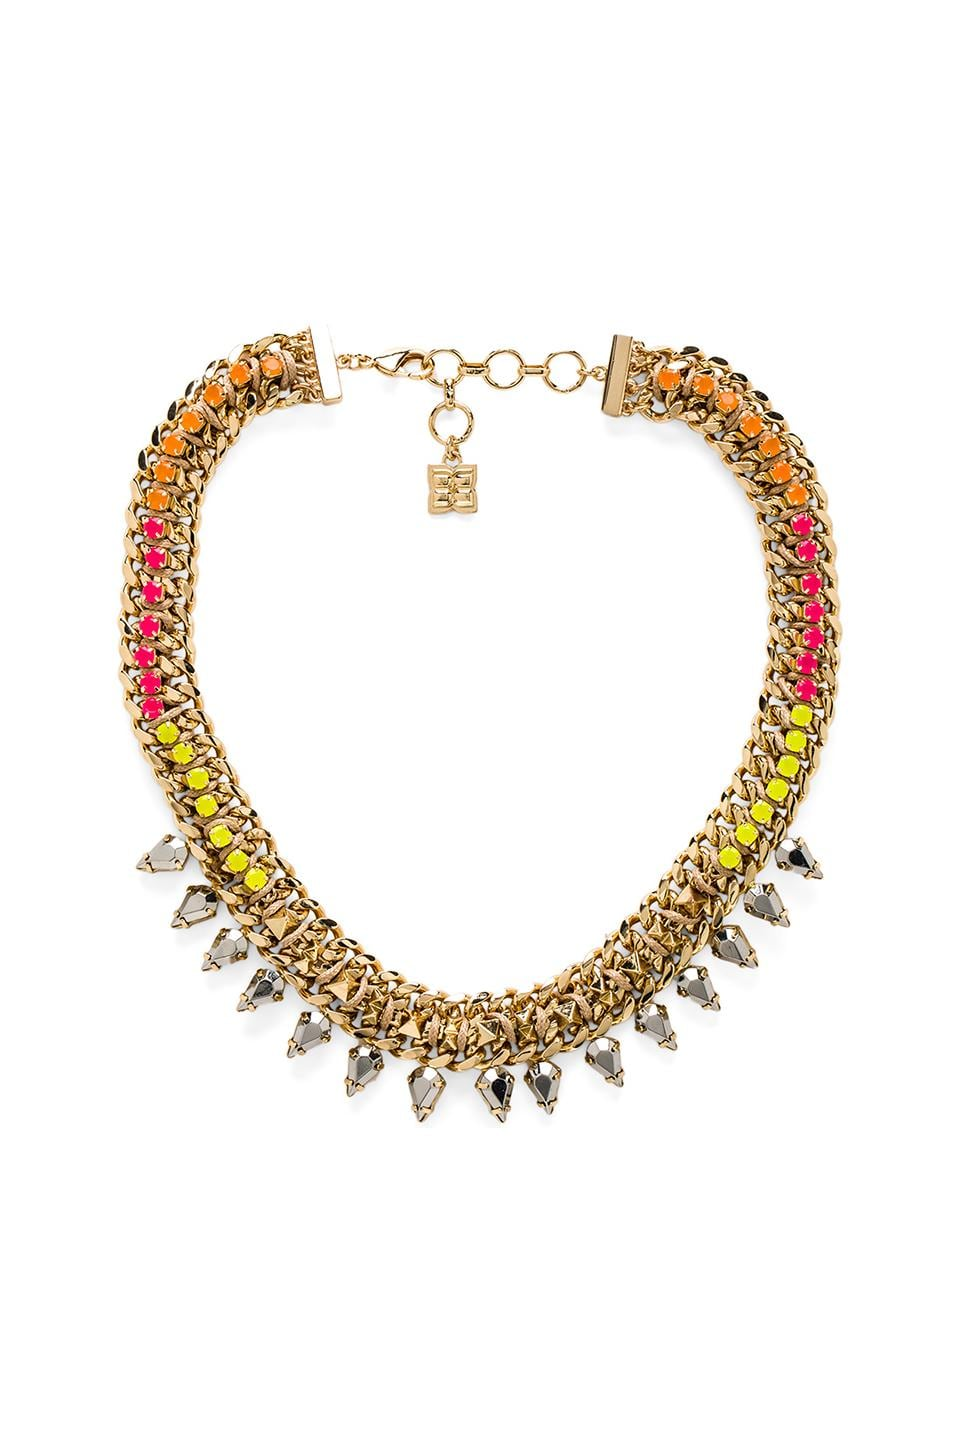 BCBGMAXAZRIA Pyramid Woven Necklace in Gold